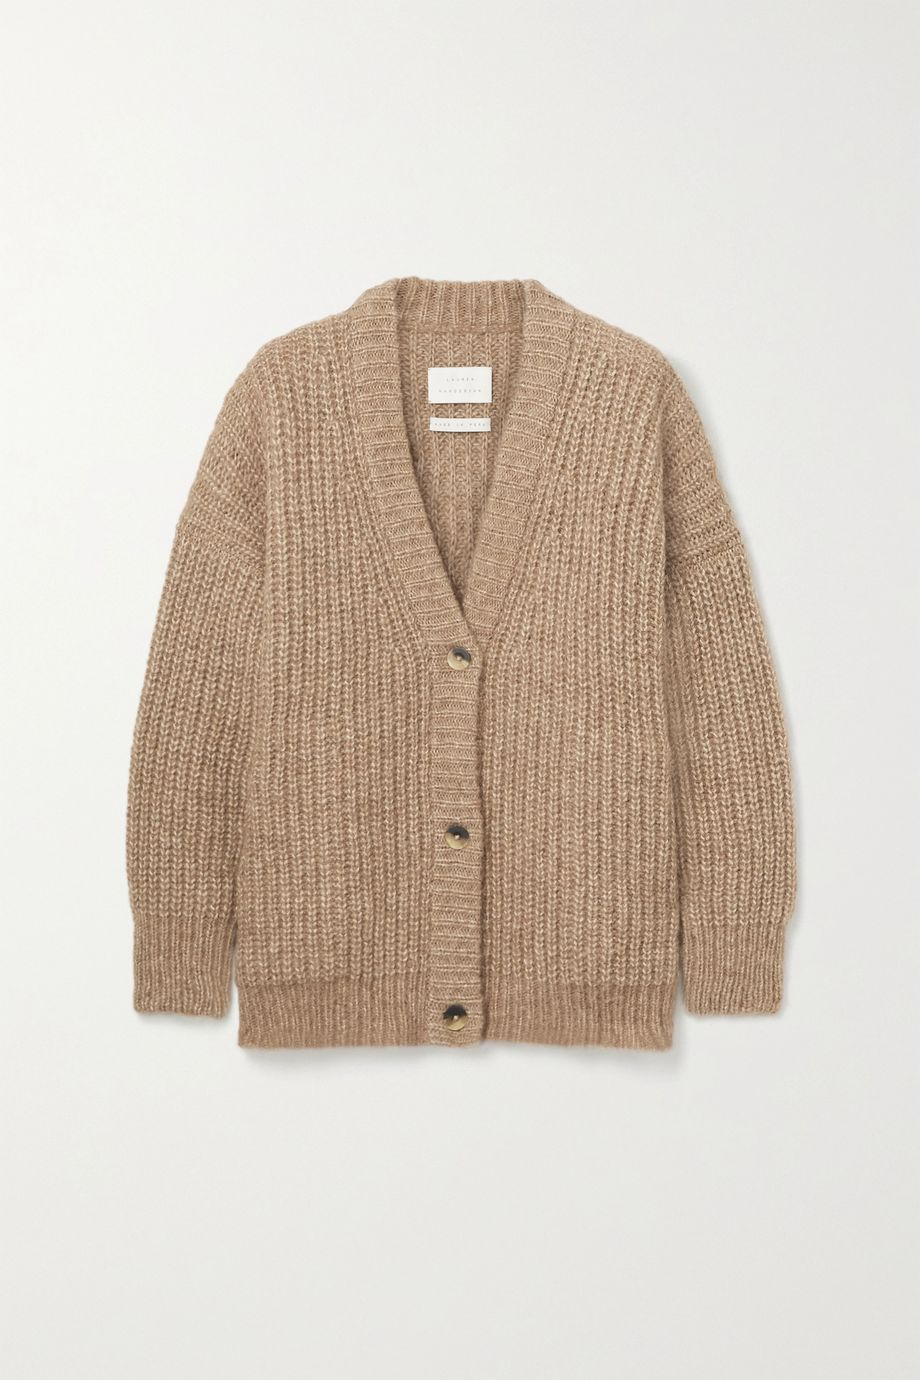 Lauren Manoogian Ribbed alpaca and cotton-blend cardigan